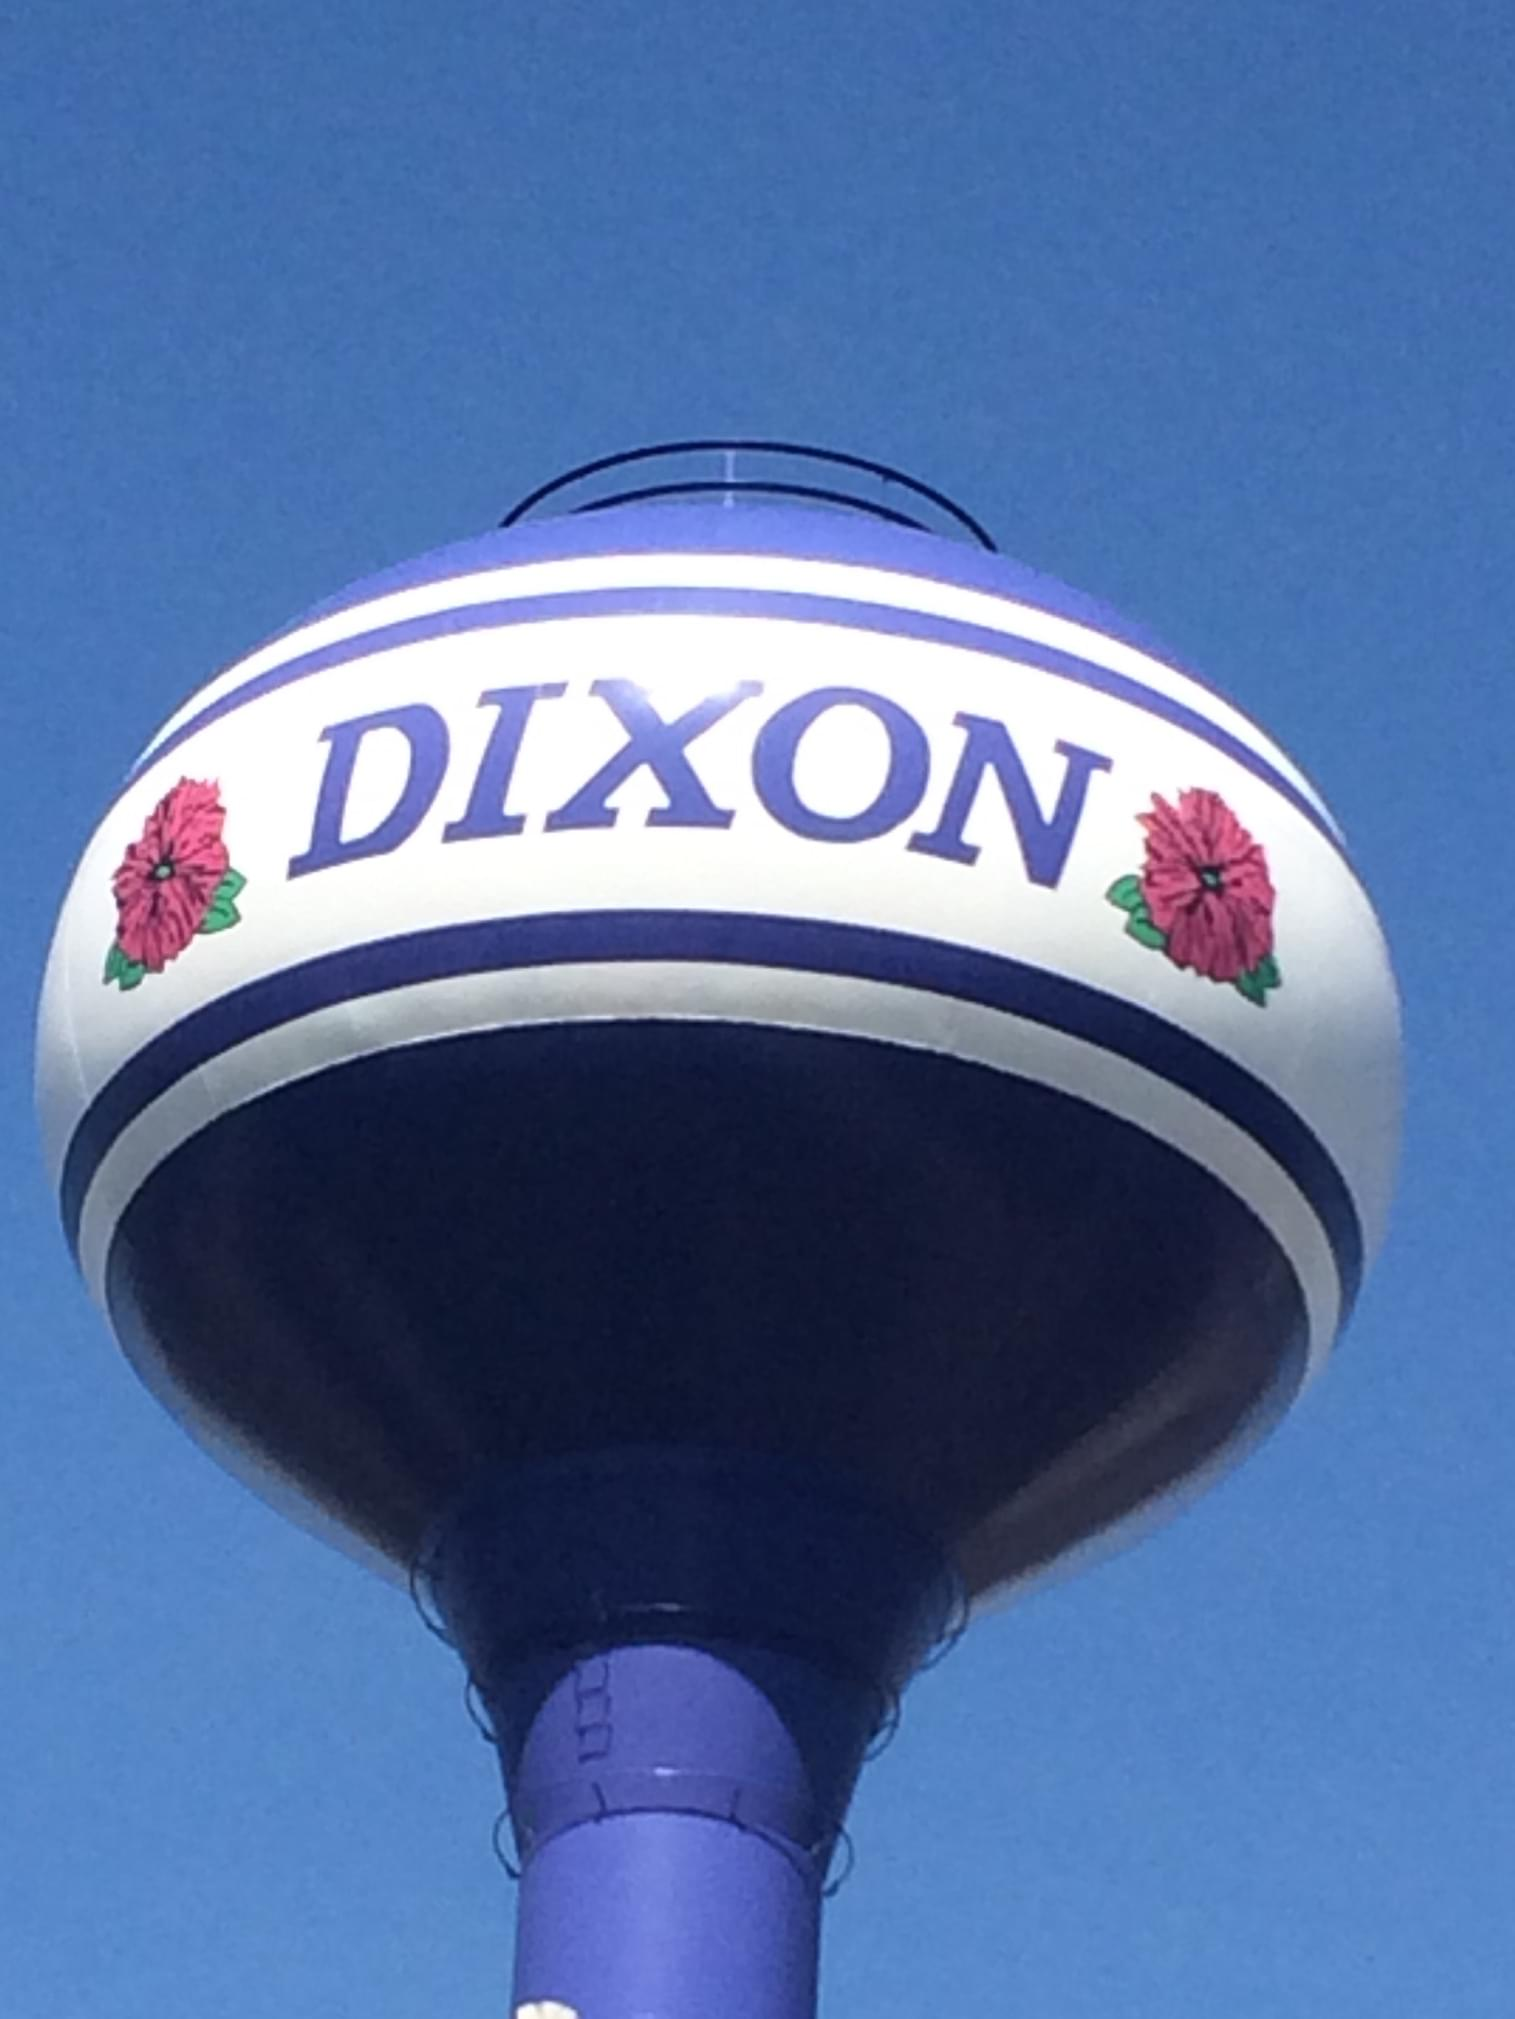 Dixon Water Department Does Some Tweaking You May Notice on Your